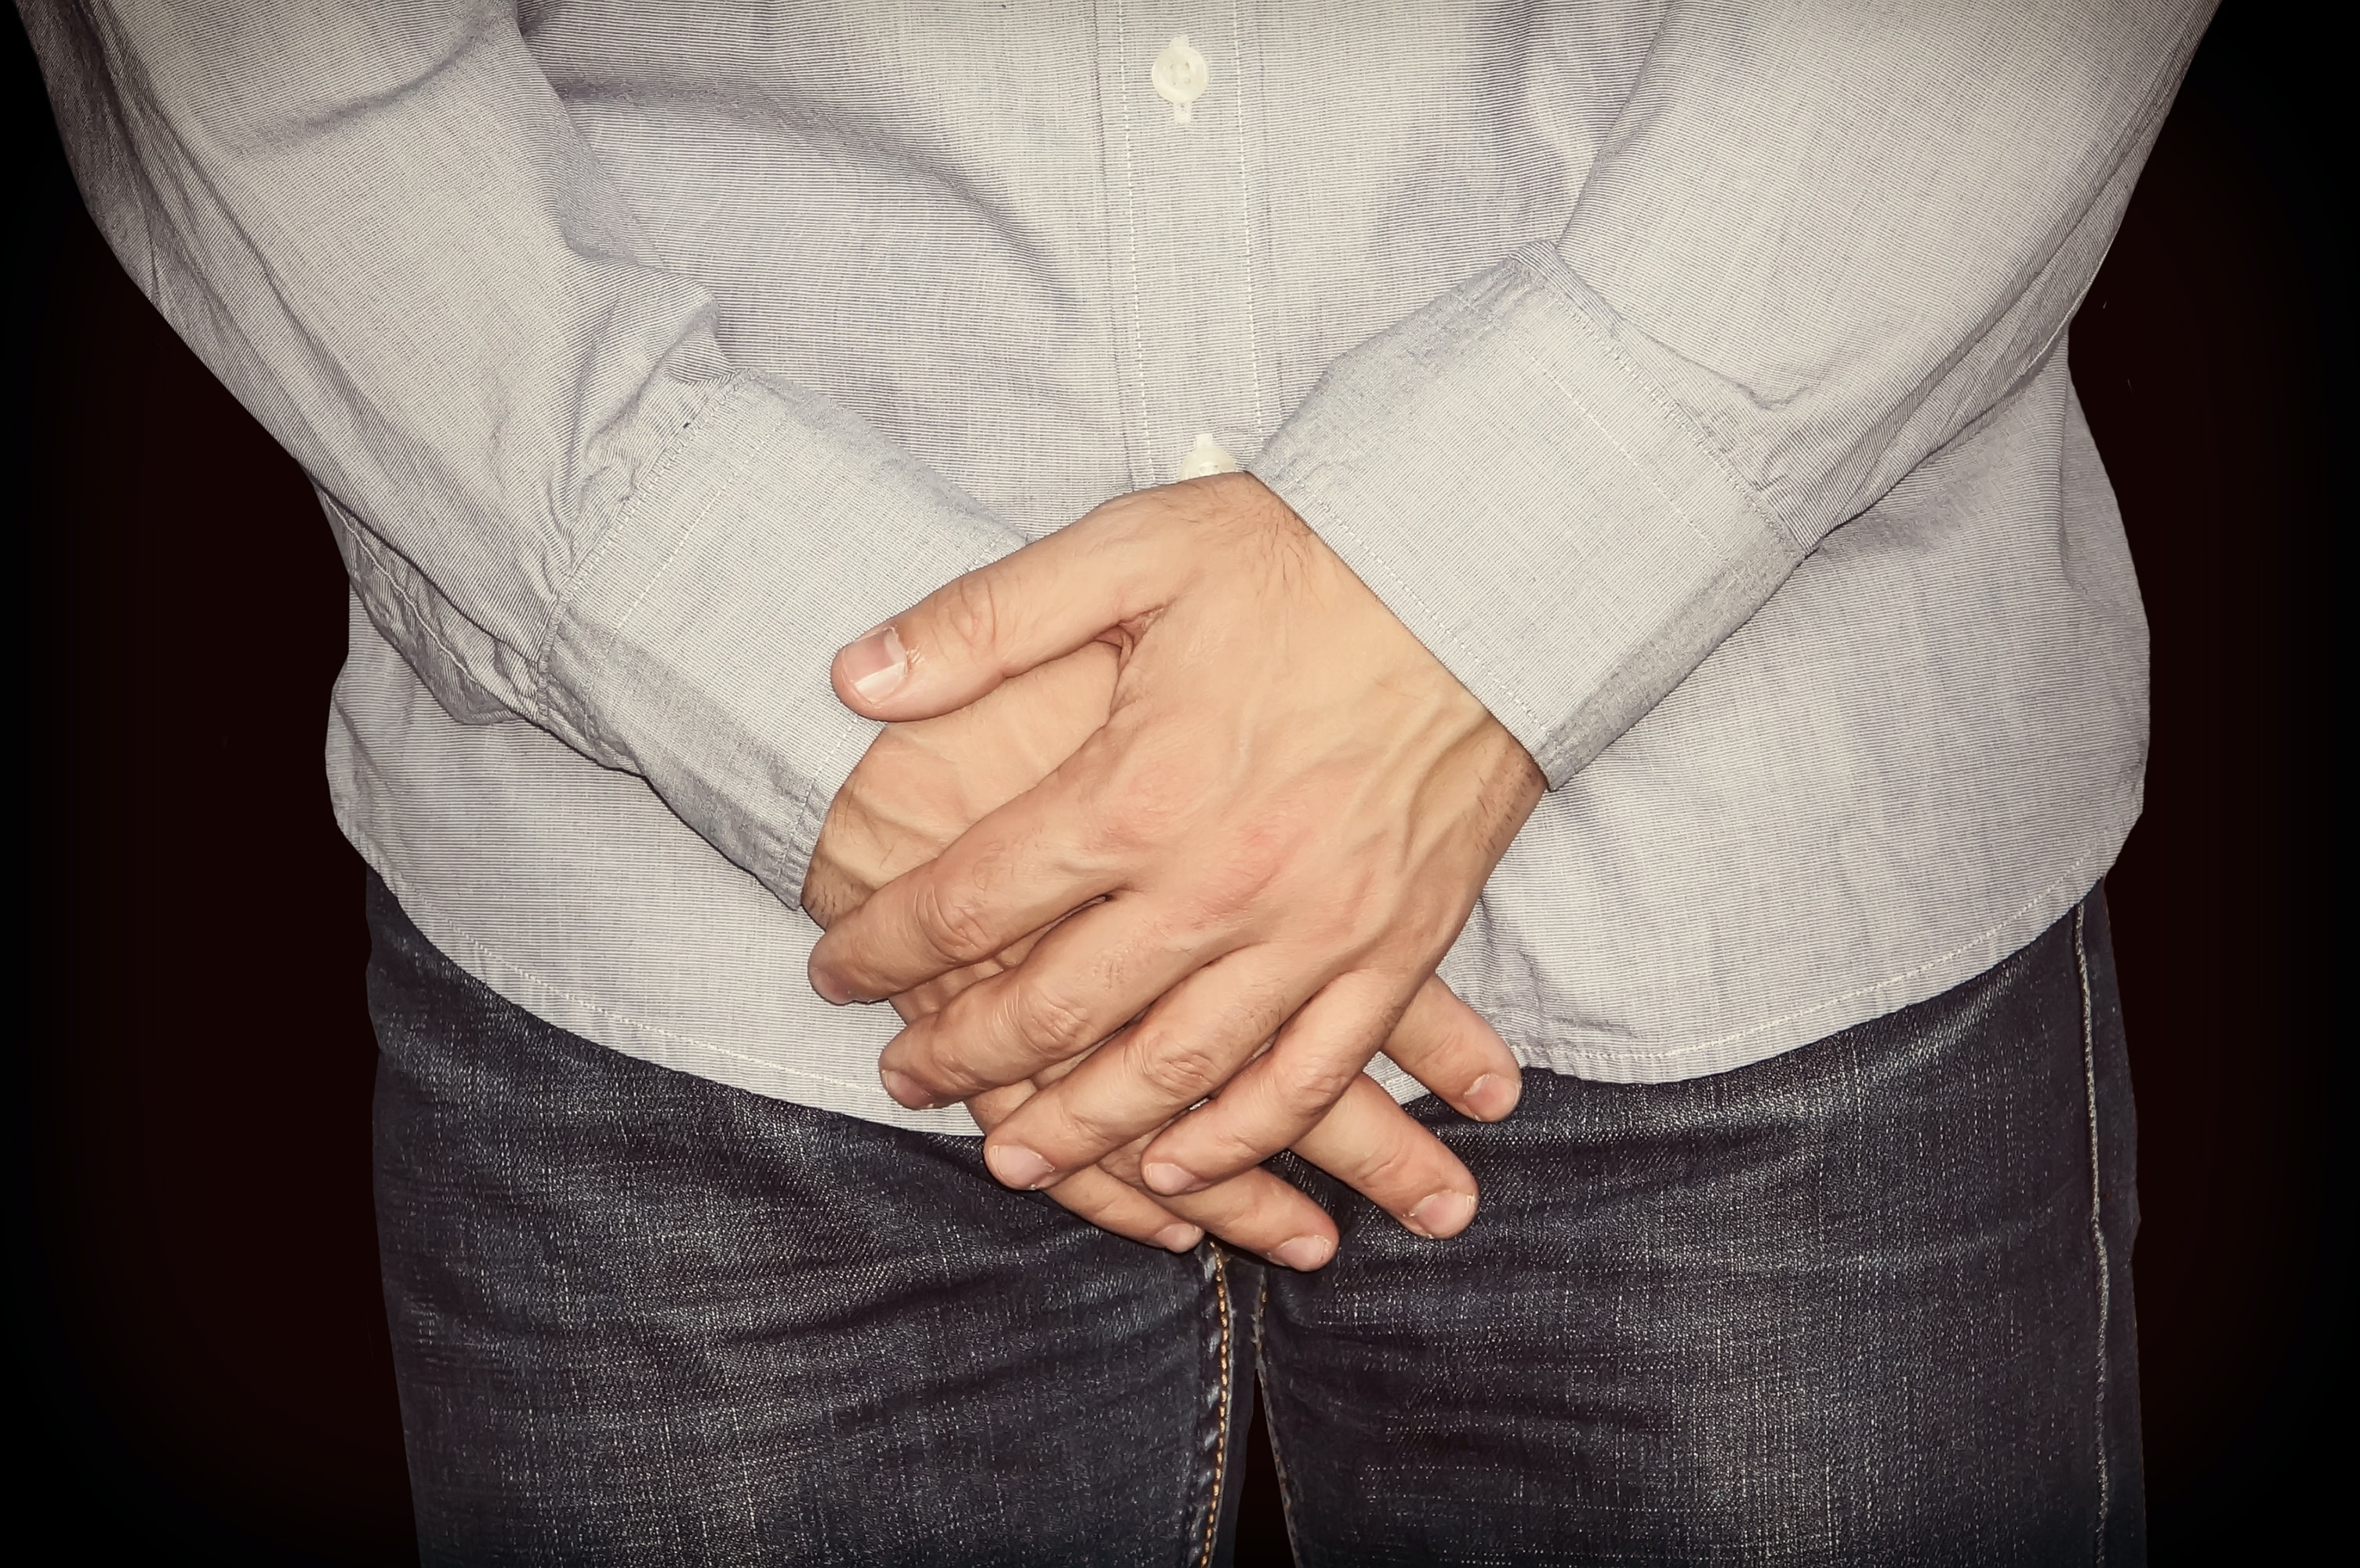 An image depicting a person suffering from scrotal rash symptoms